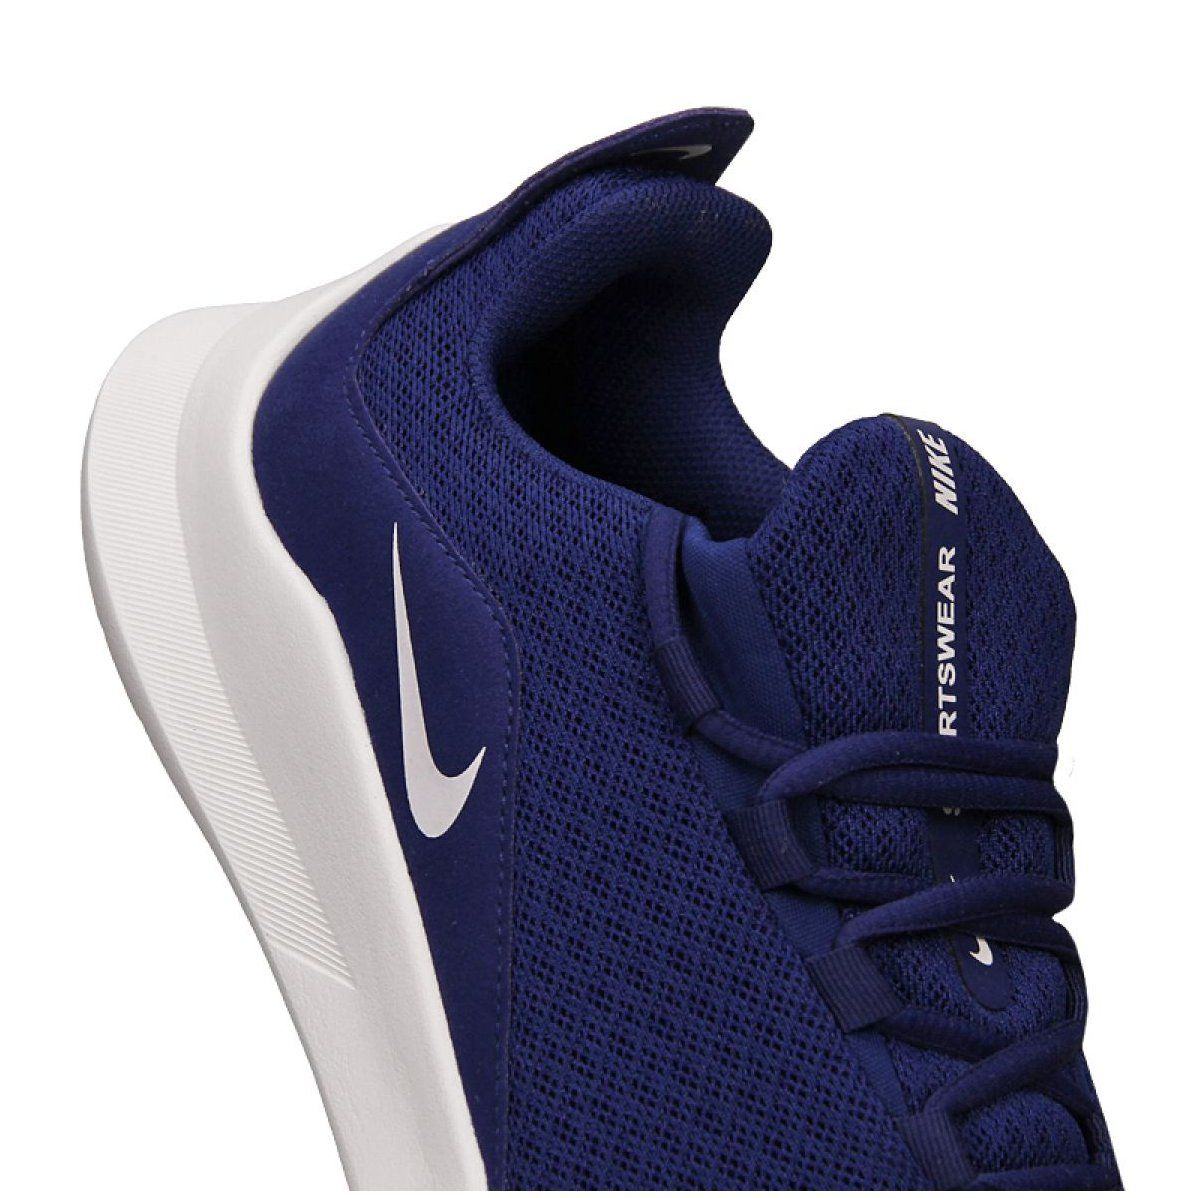 Nike Viale M Aa2181 403 Shoes Navy Shoes Light Weight Shoes Running Shoes Nike